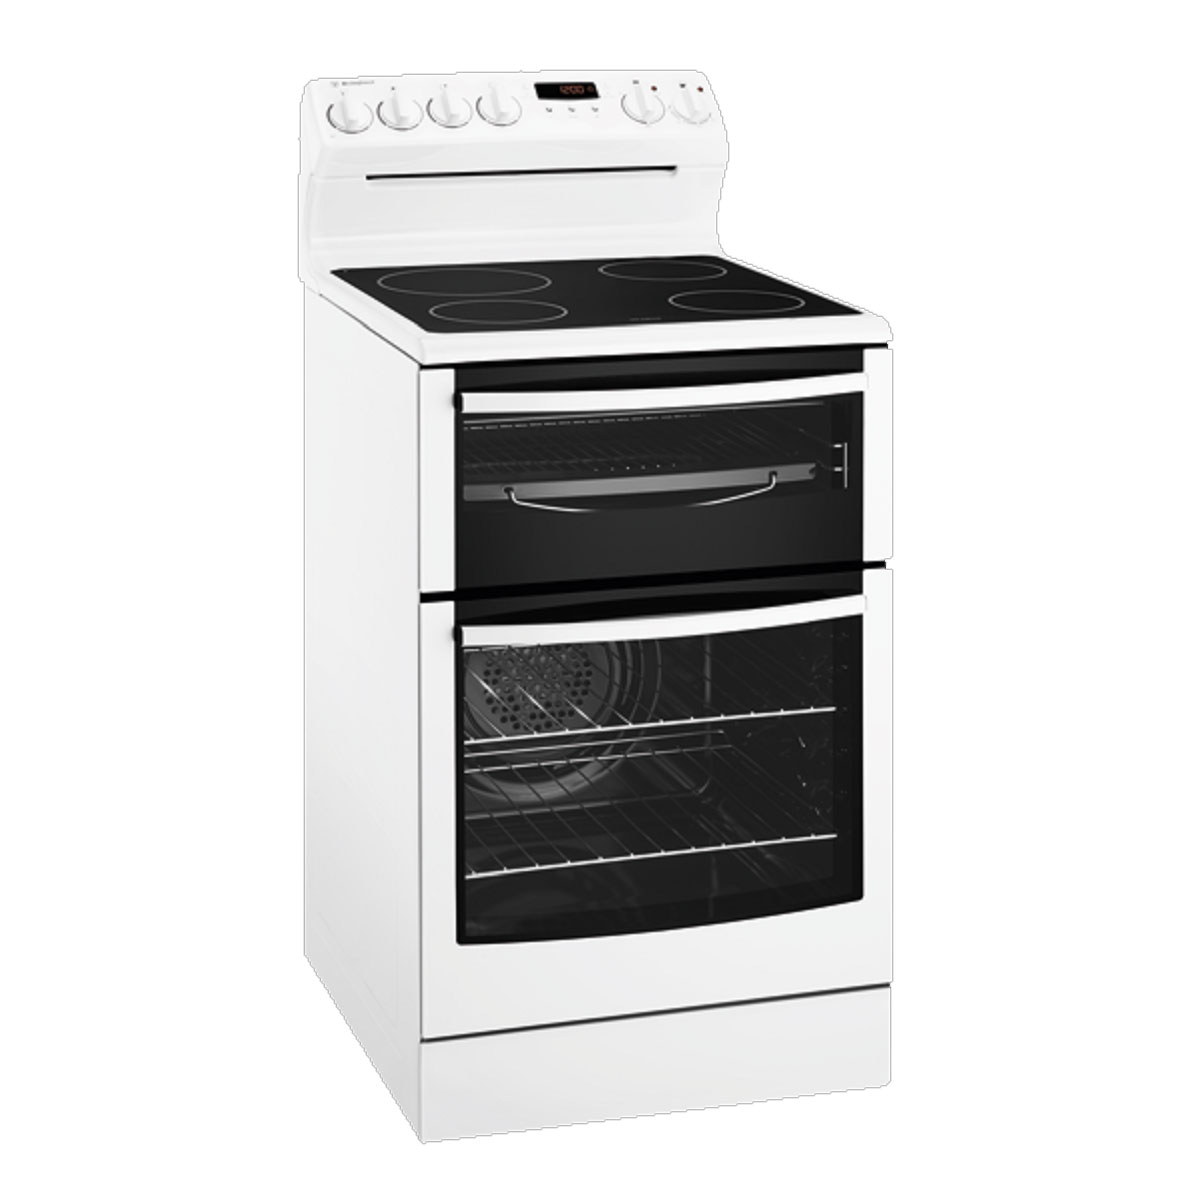 Westinghouse WLE547WA Freestanding Electric Oven/Stove